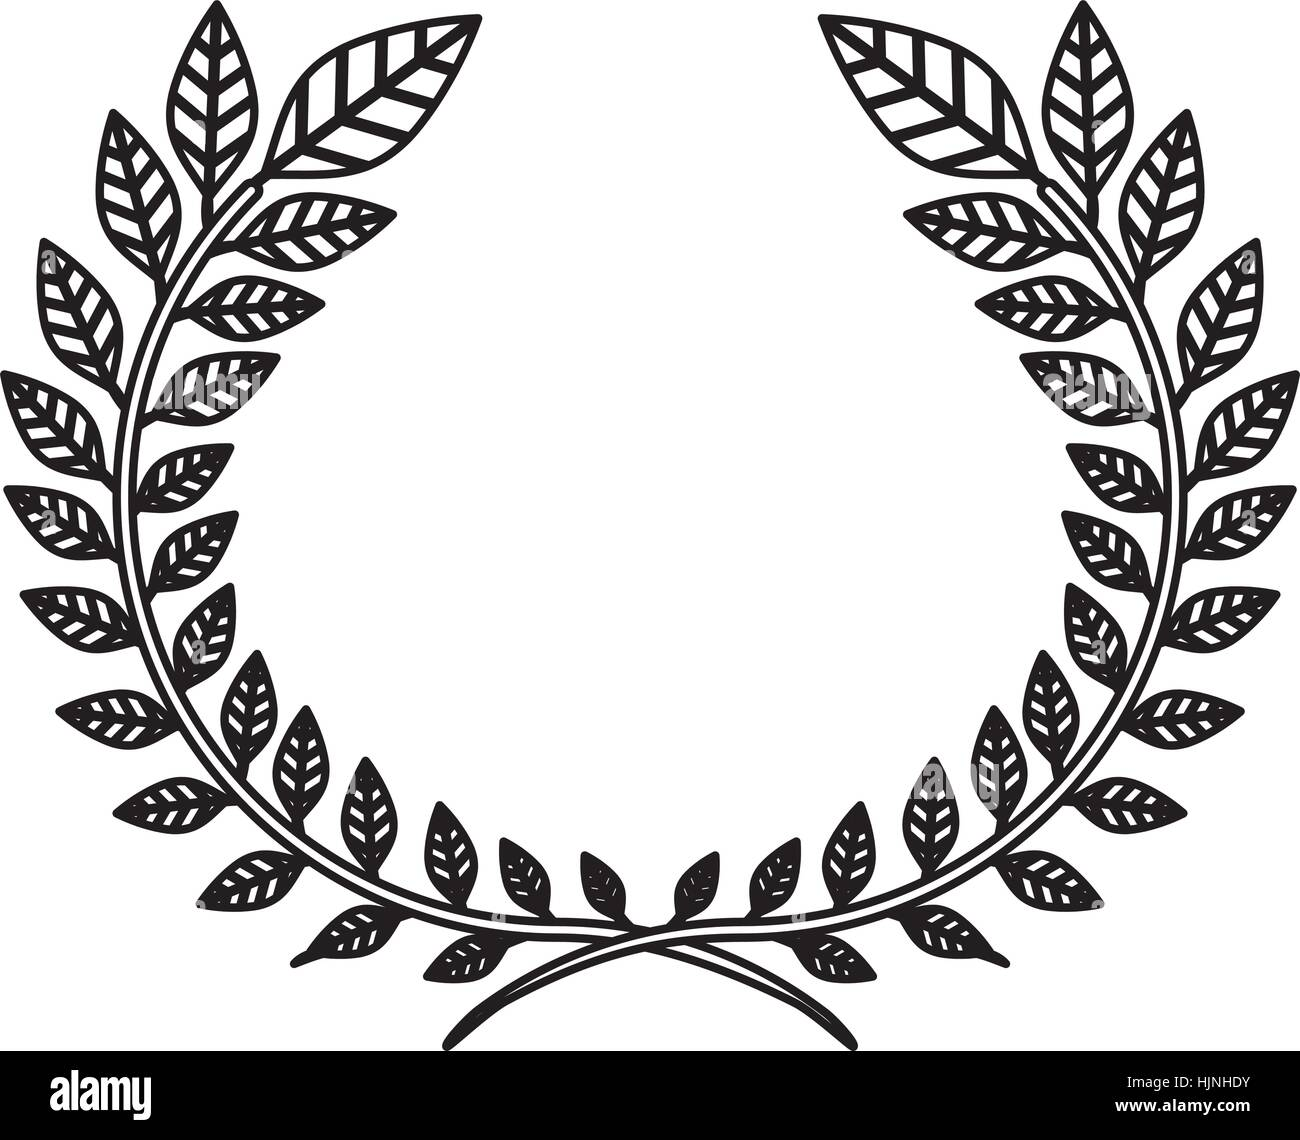 wreath leaves ornament icon vector illustration graphic stock vector image art alamy https www alamy com stock photo wreath leaves ornament icon vector illustration graphic 132011095 html